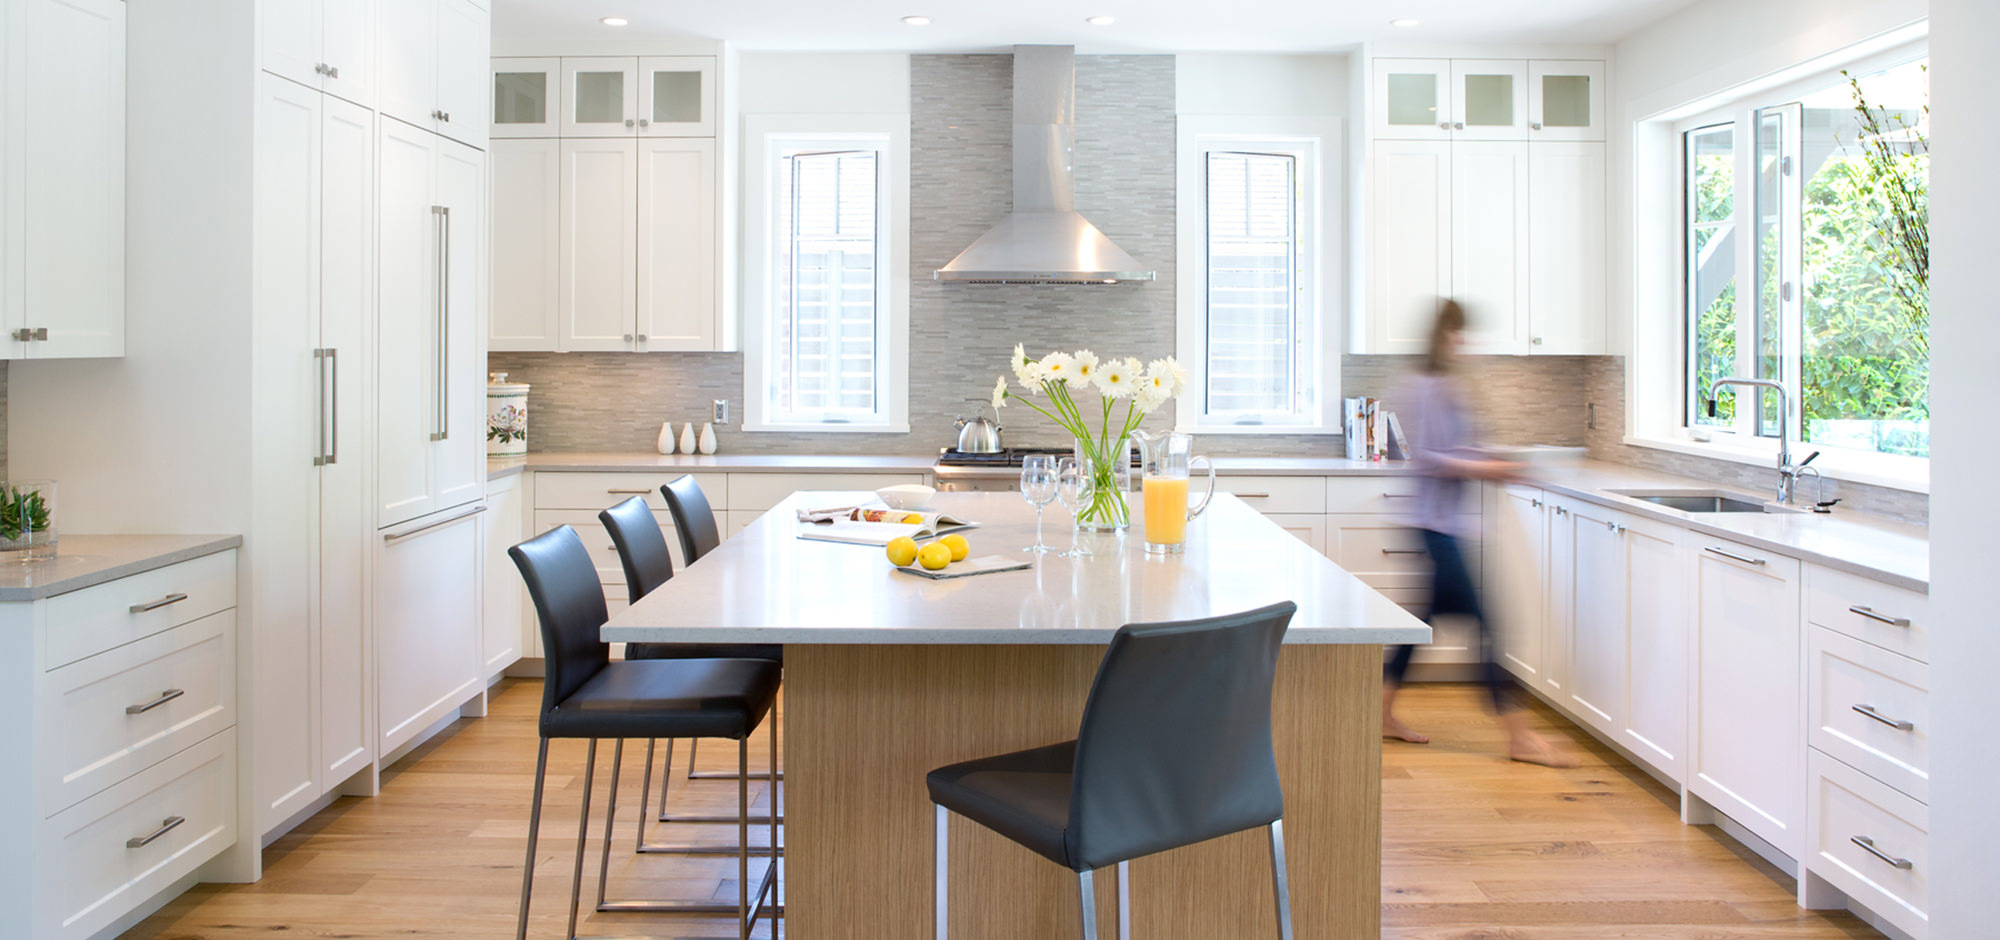 White kitchen with a center aisle countertop and black bar stools